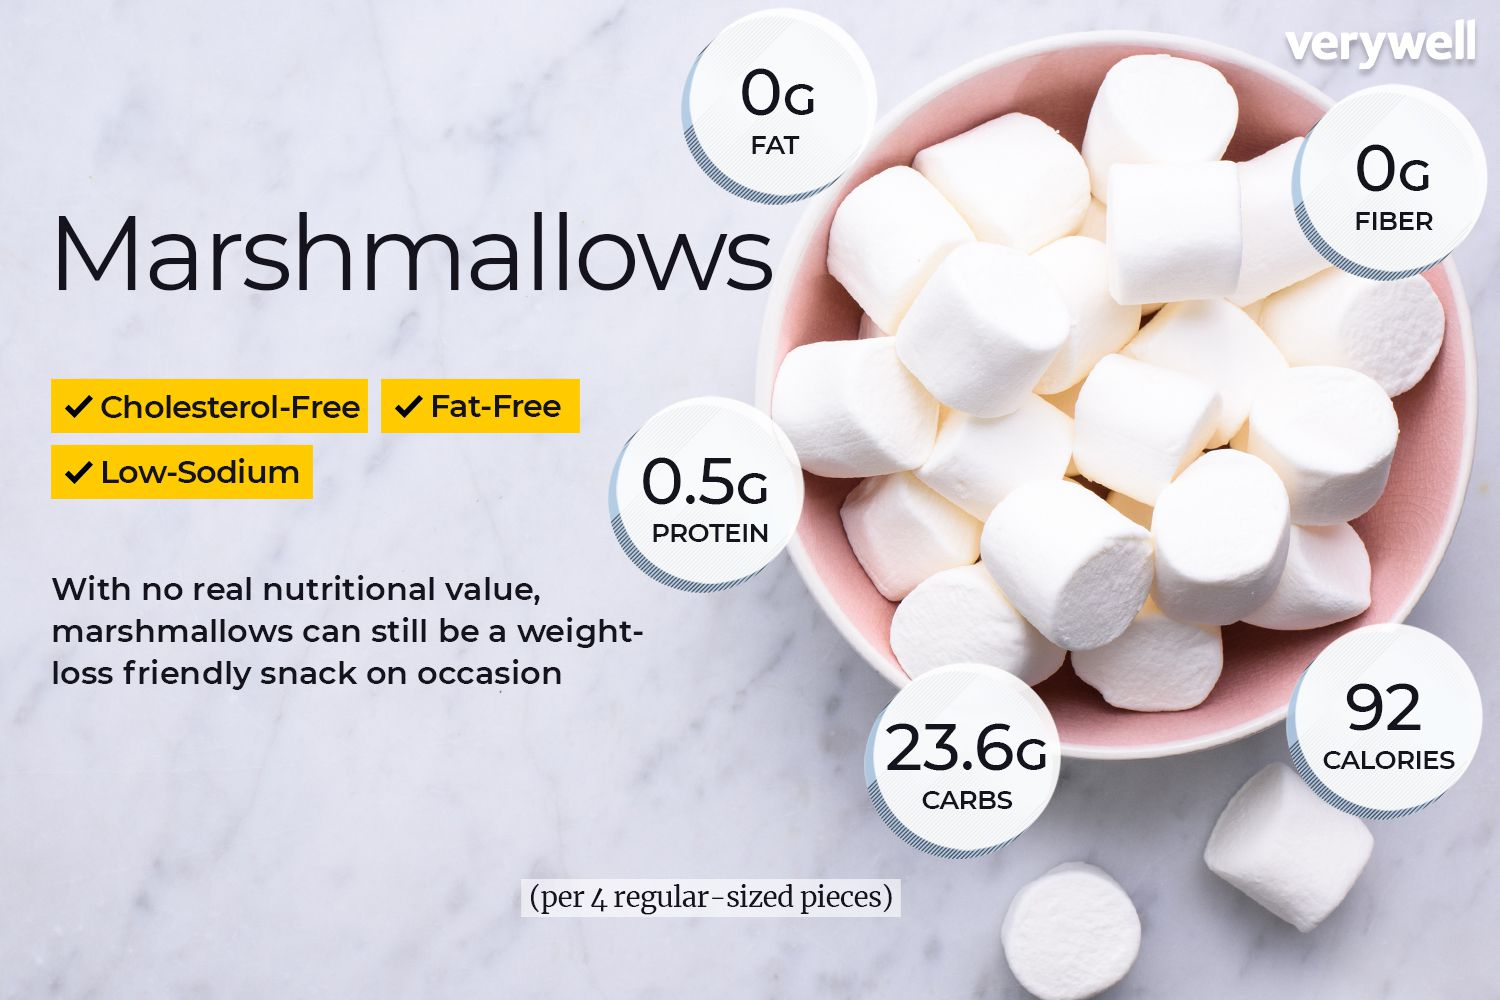 Marshmallow Nutrition Facts Calories Carbs Benefits